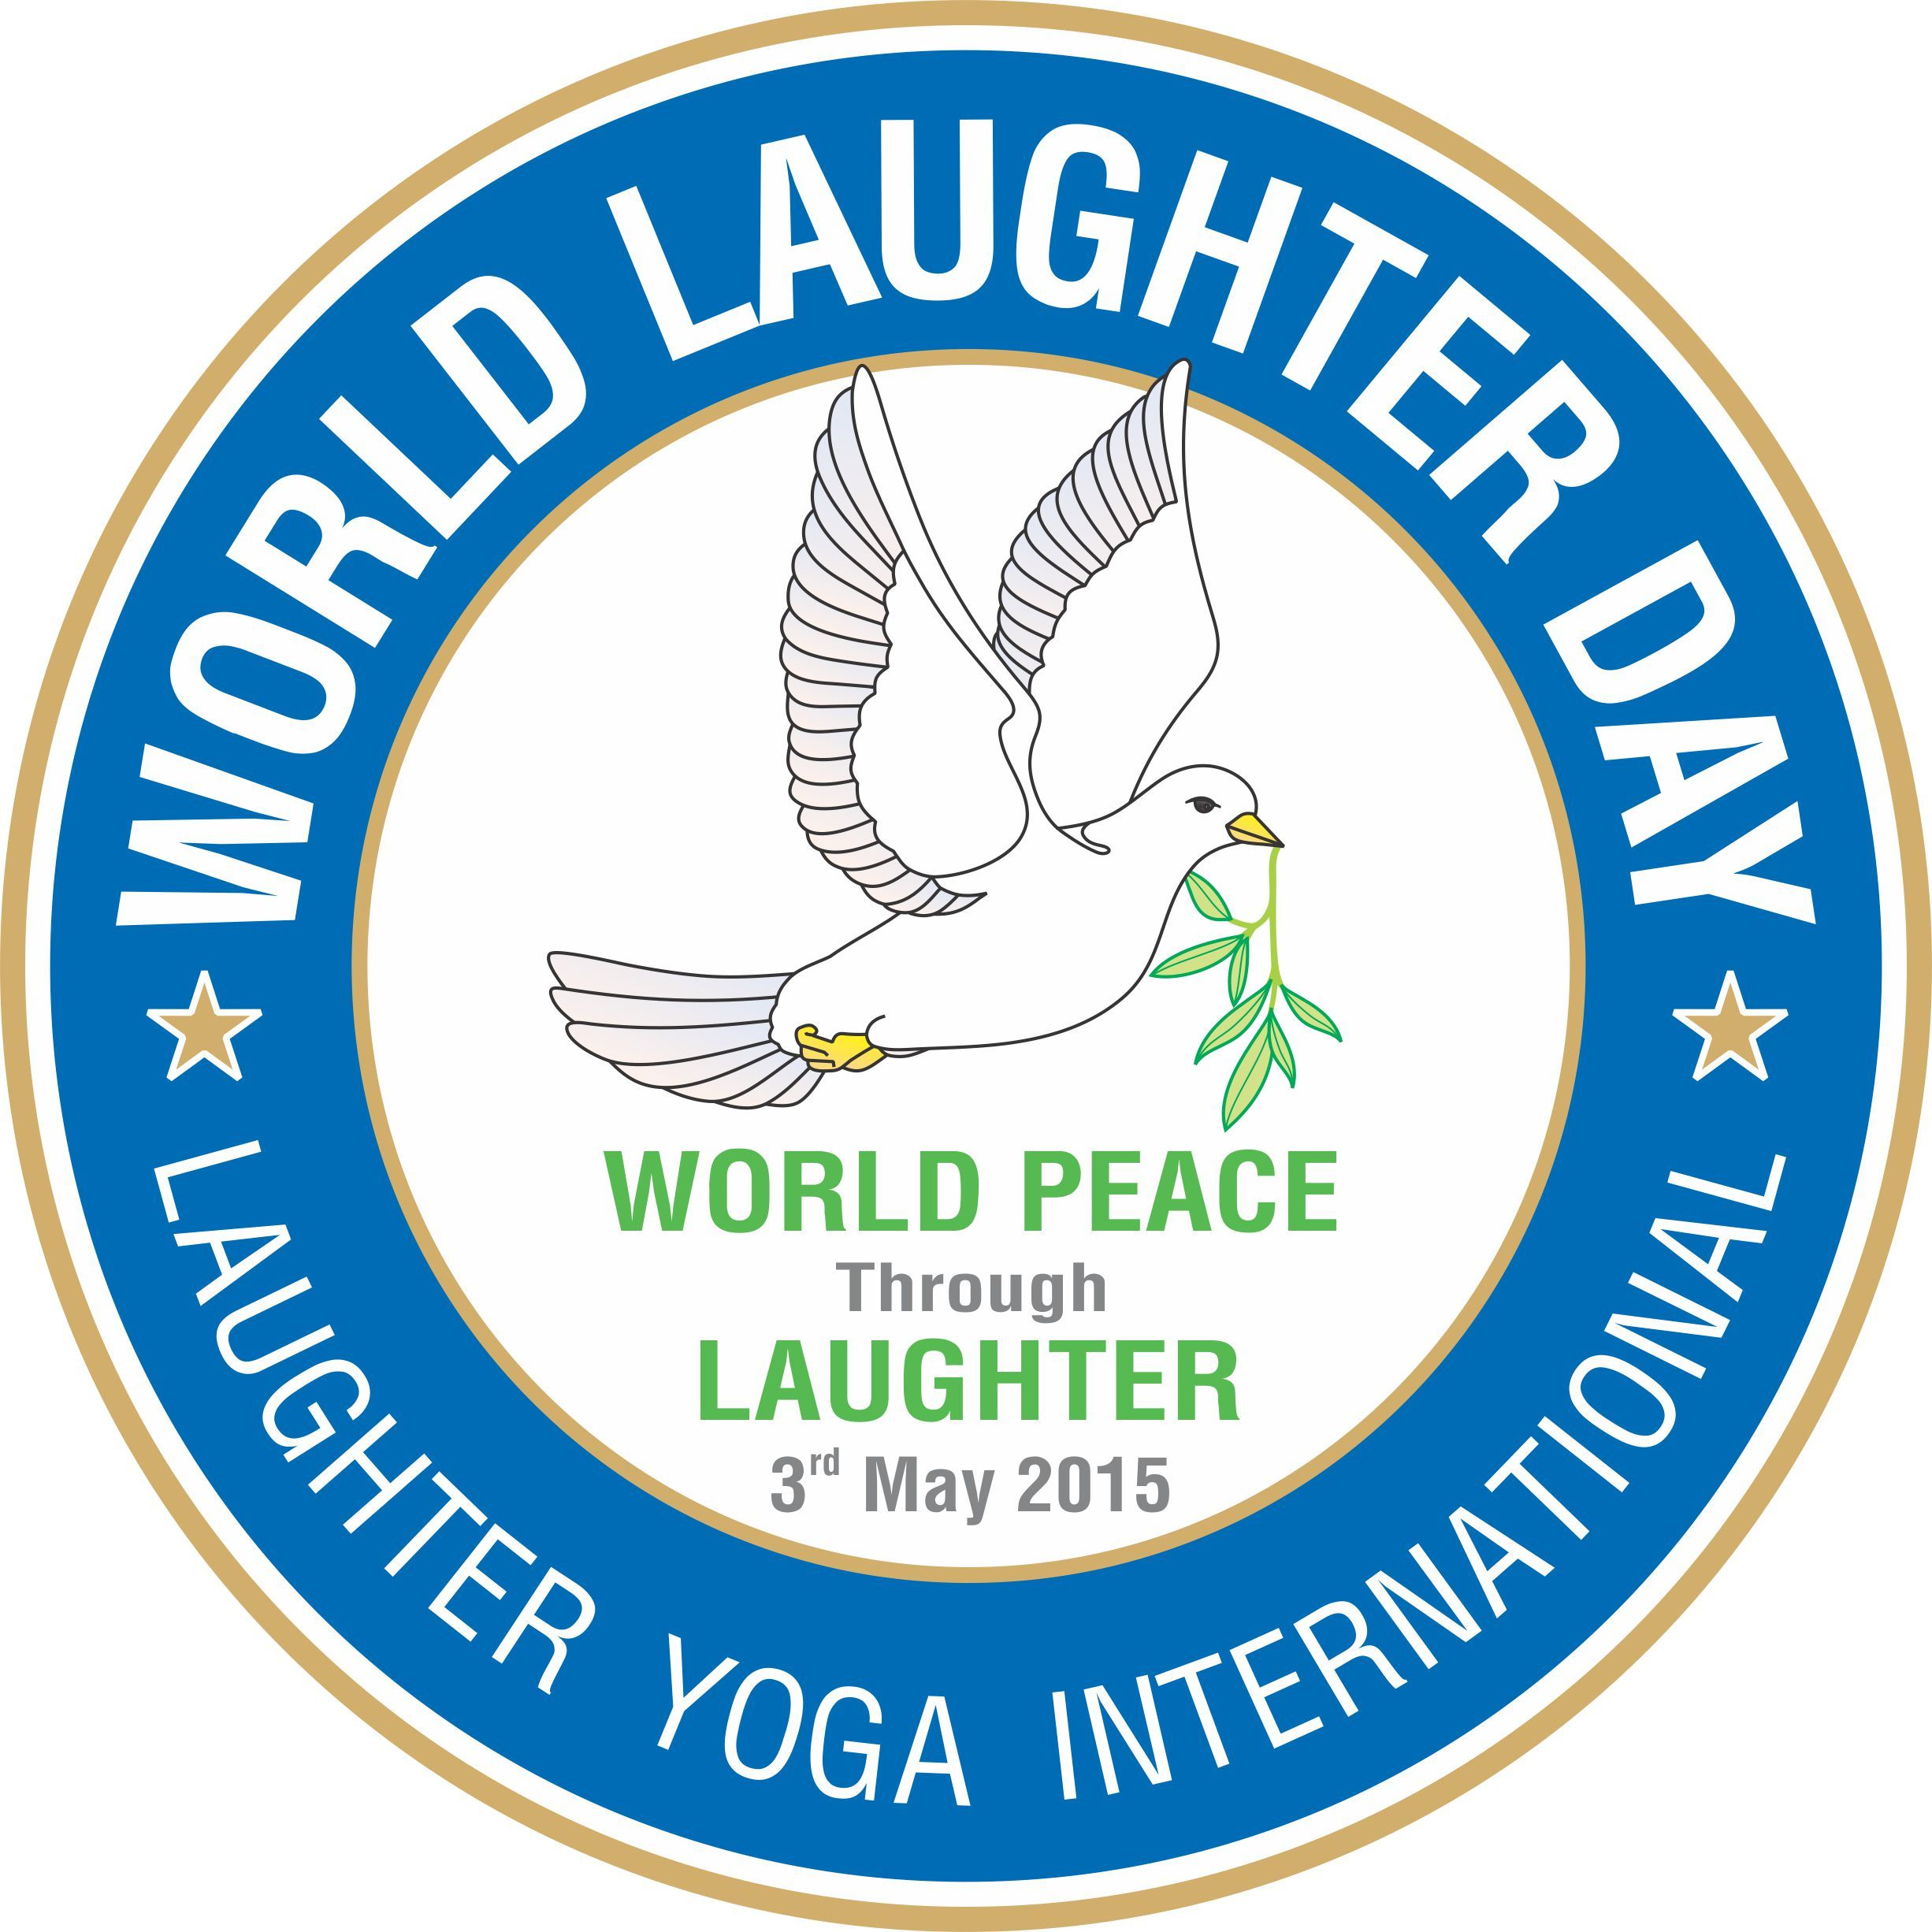 Pin By Alexa Drubay On Laughter Yoga World Laughter Day Laughter Yoga Laughter Day